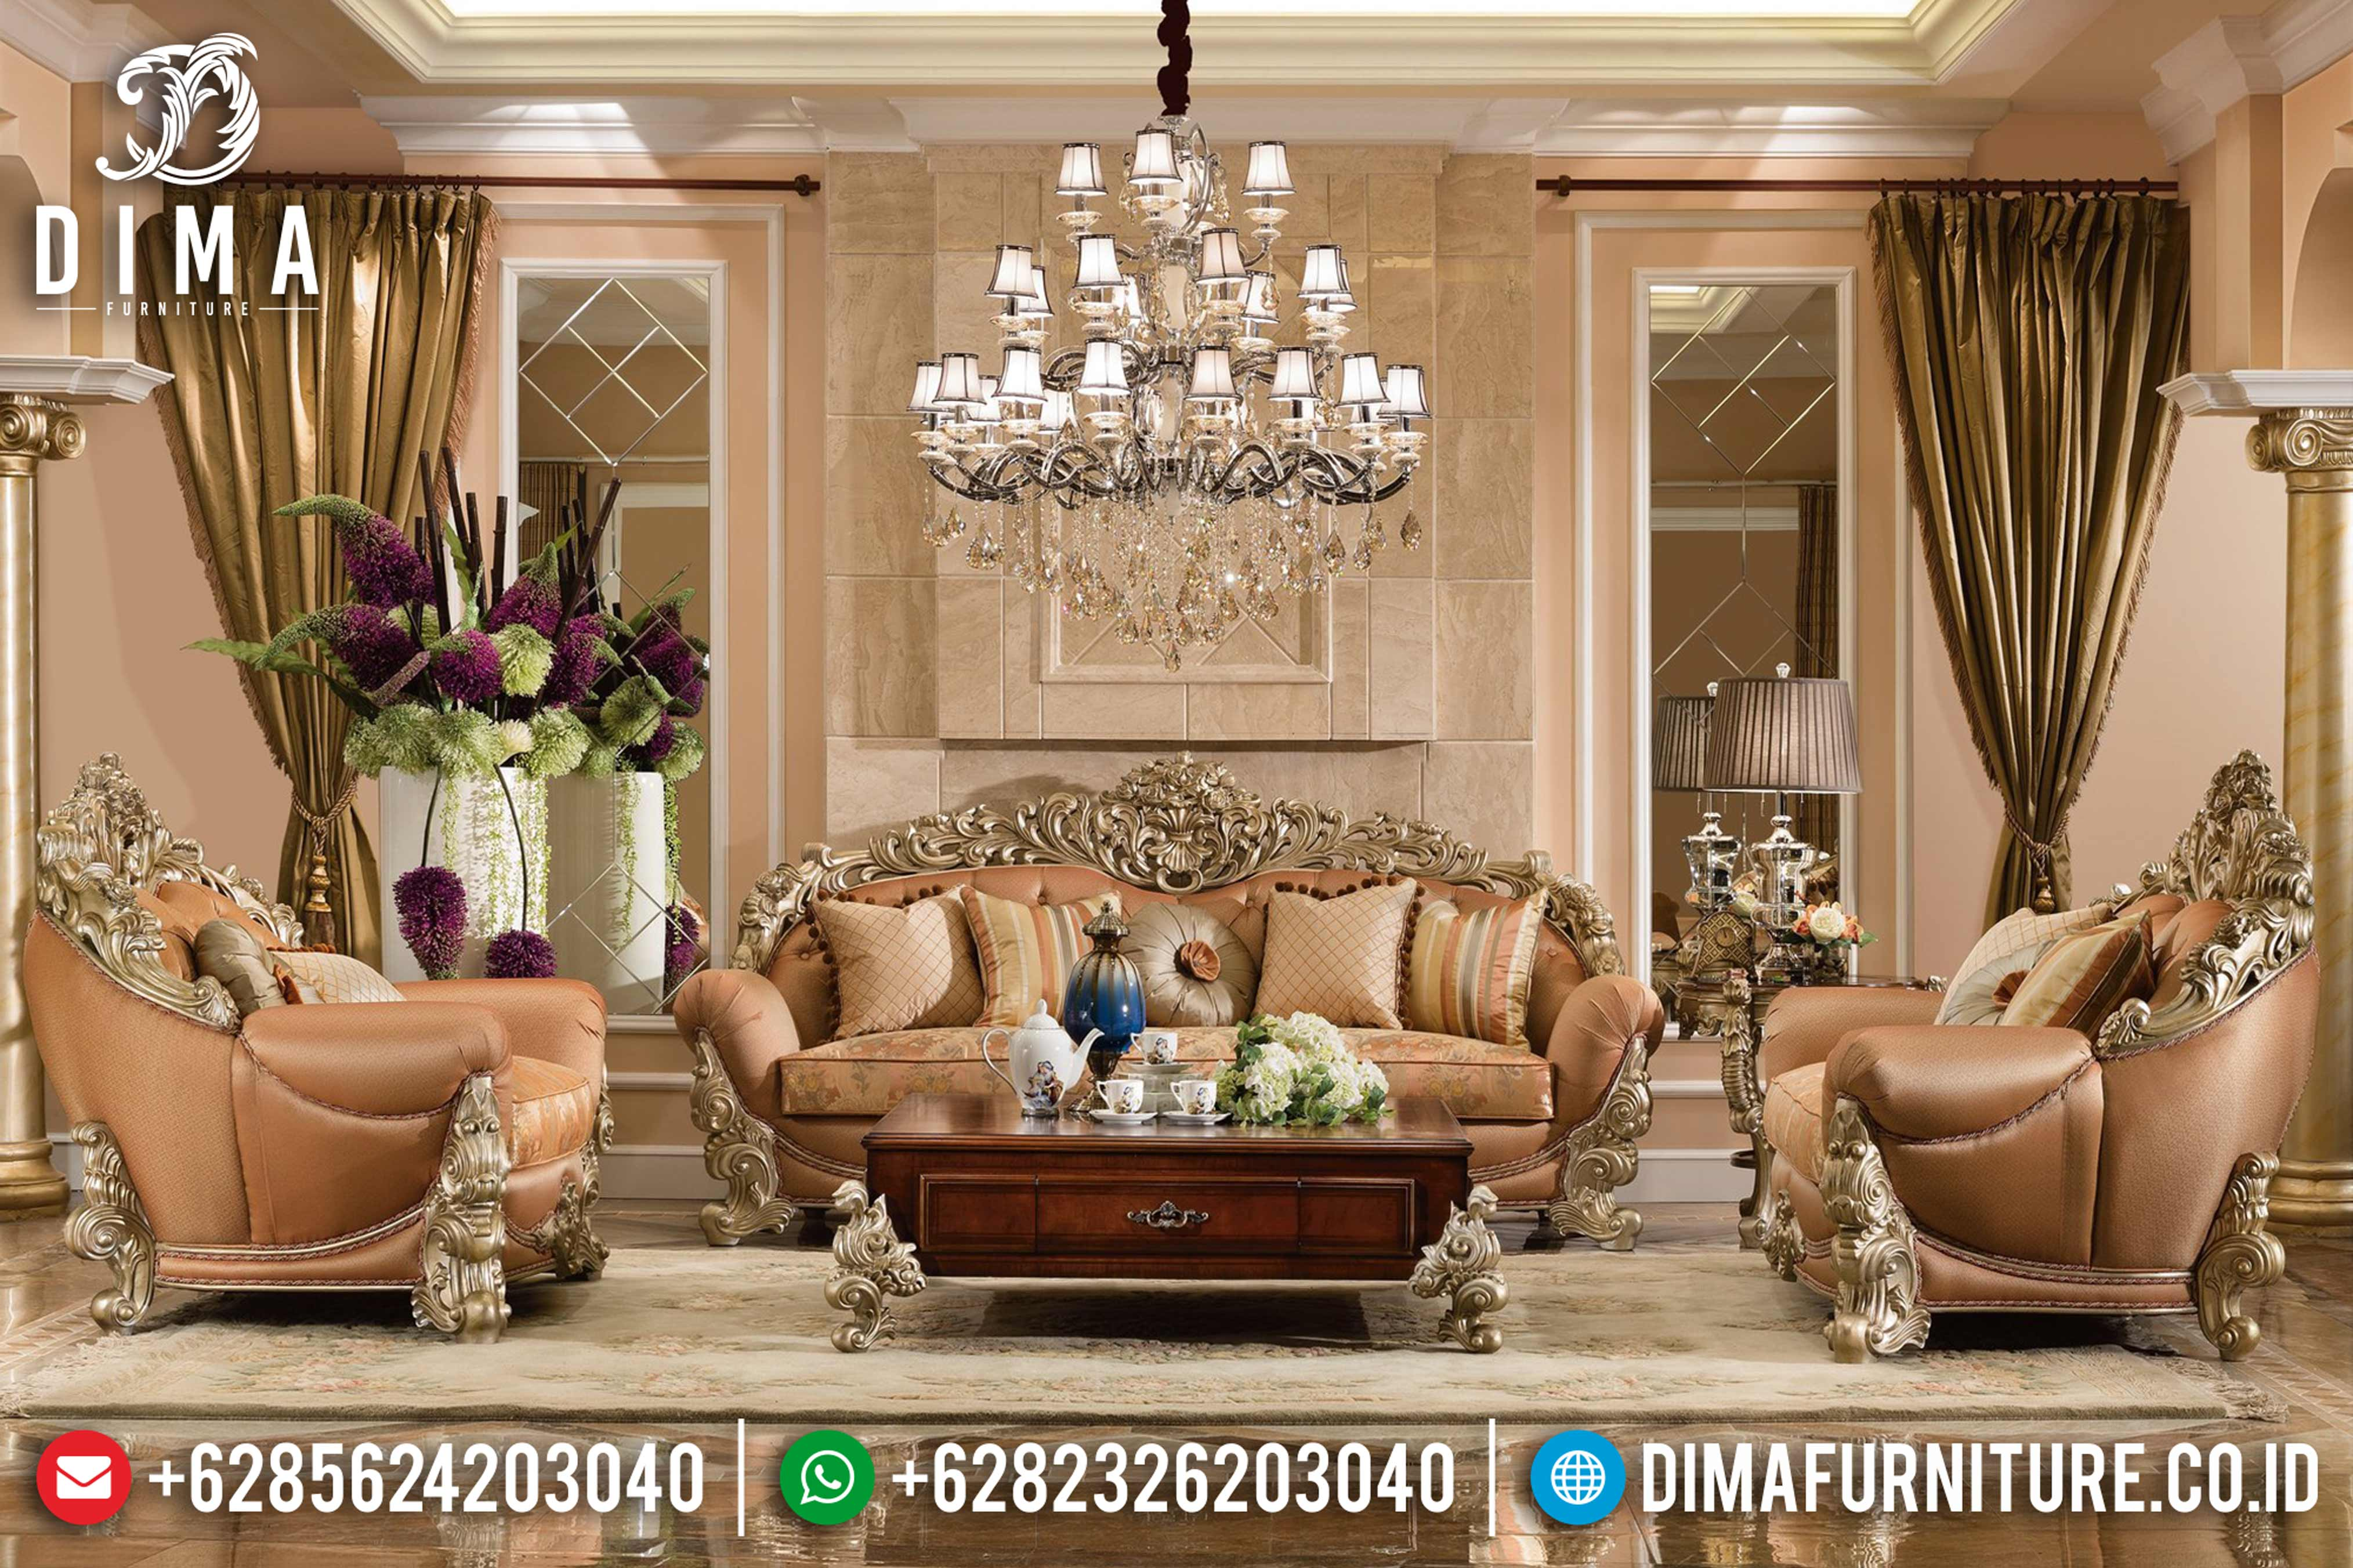 Royal Brunello Sofa Tamu Mewah Jepara Furniture Indonesia Model Terbaru DF-0686